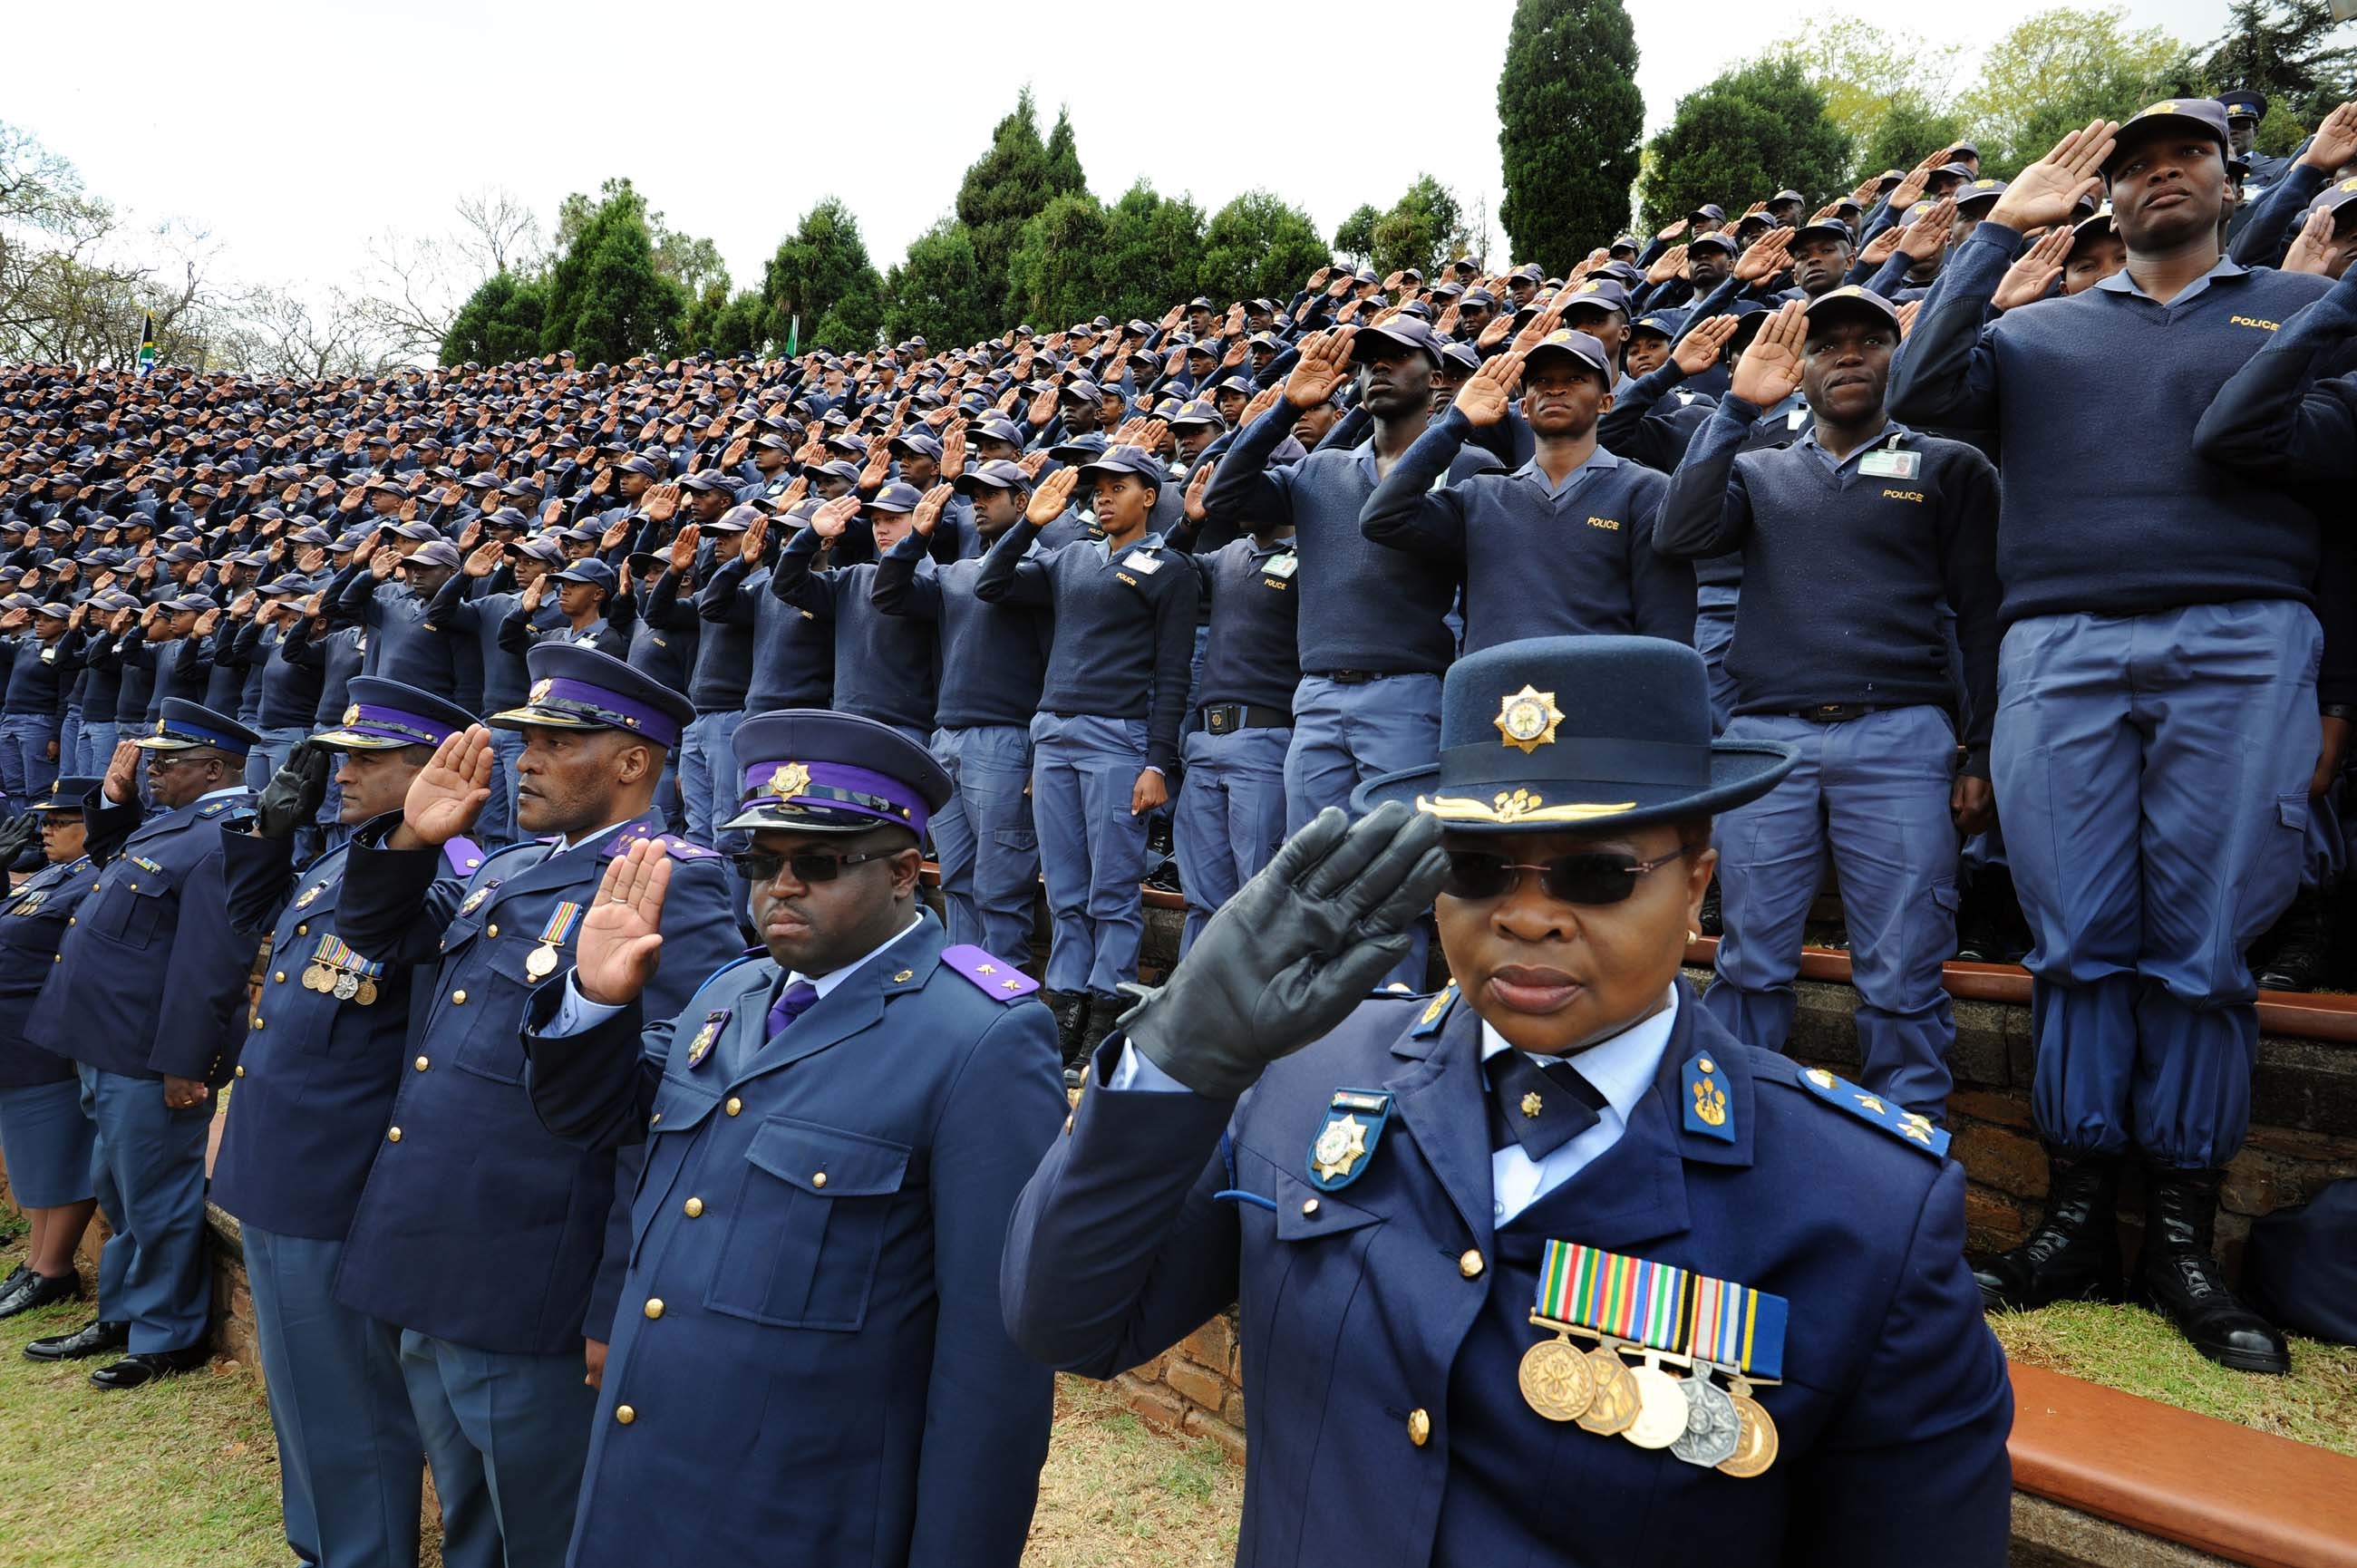 south africa u0026 39 s police  at times proud  at times shamed by